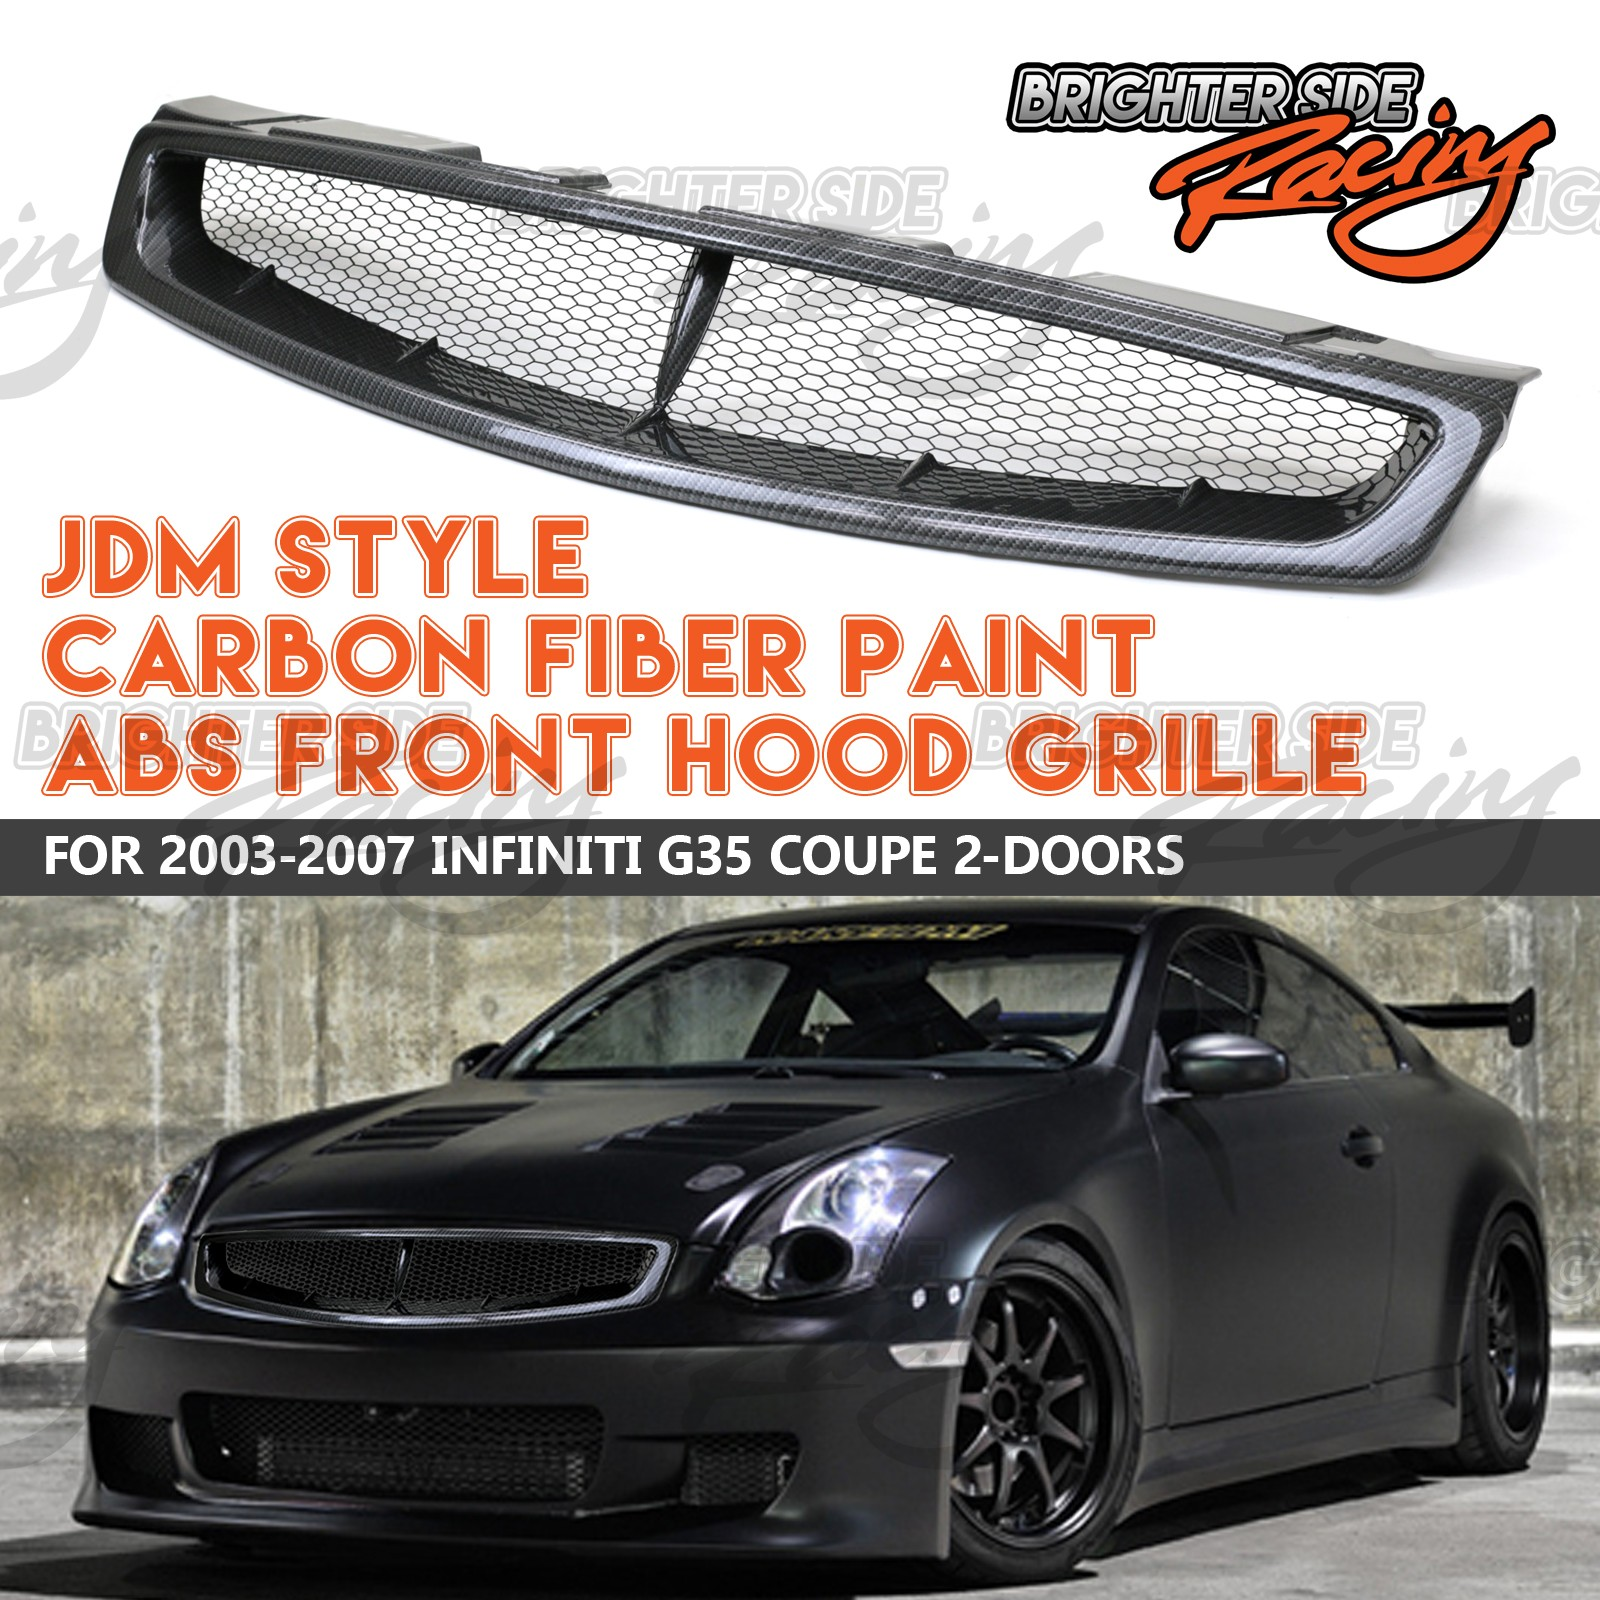 Details About For 05 07 Infiniti G35 Coupe Euro Style Abs Carbon Fiber Paint Hood Grille Grill